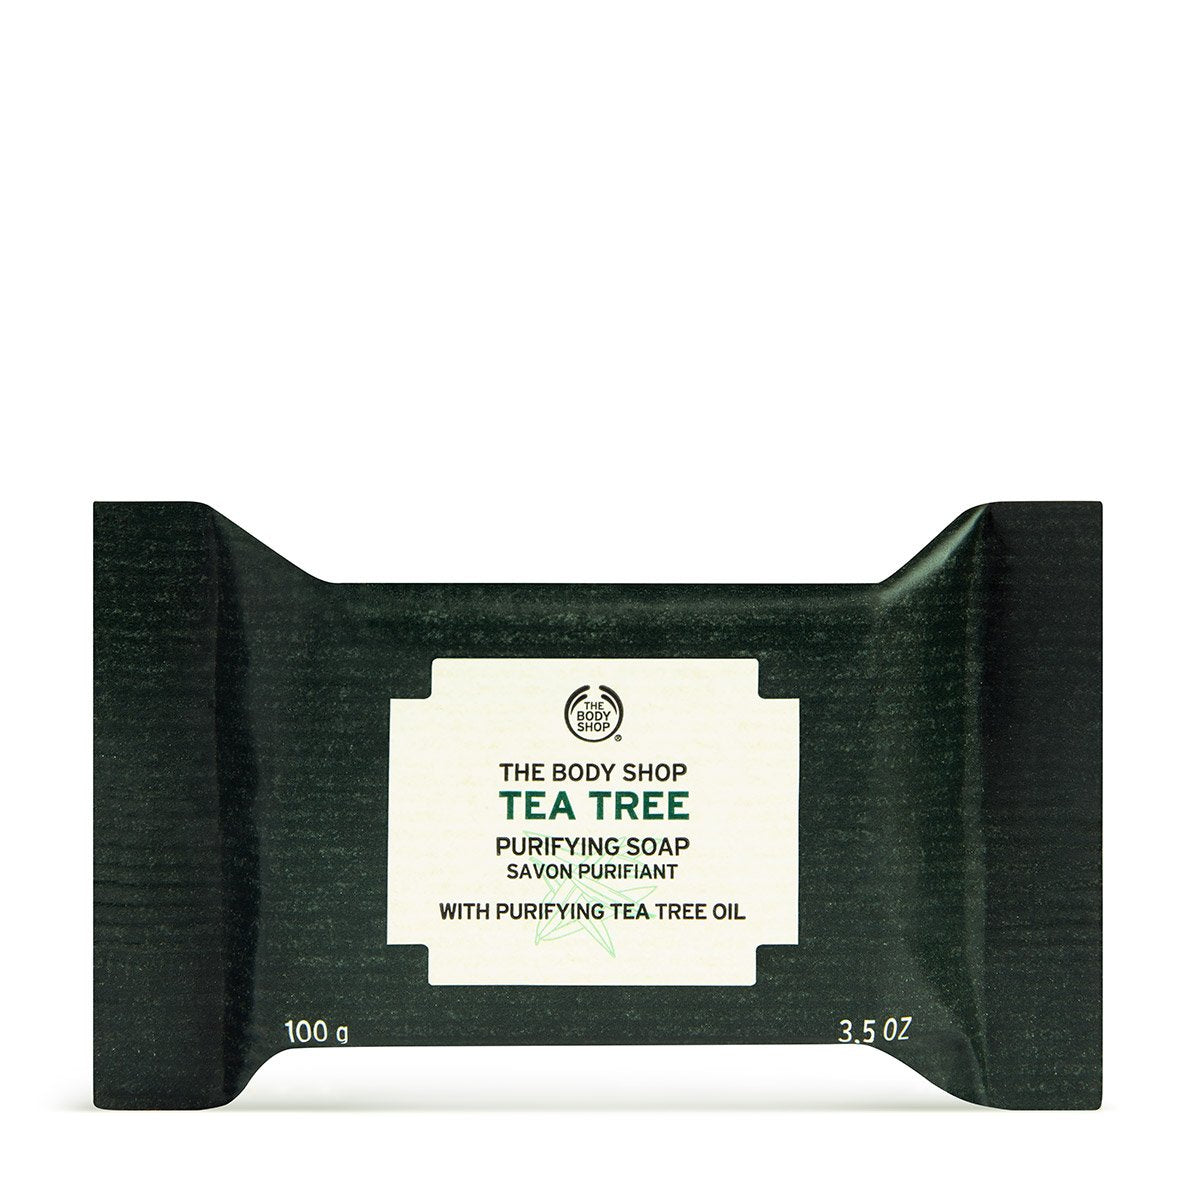 Tea Tree Purifying Soap 100g